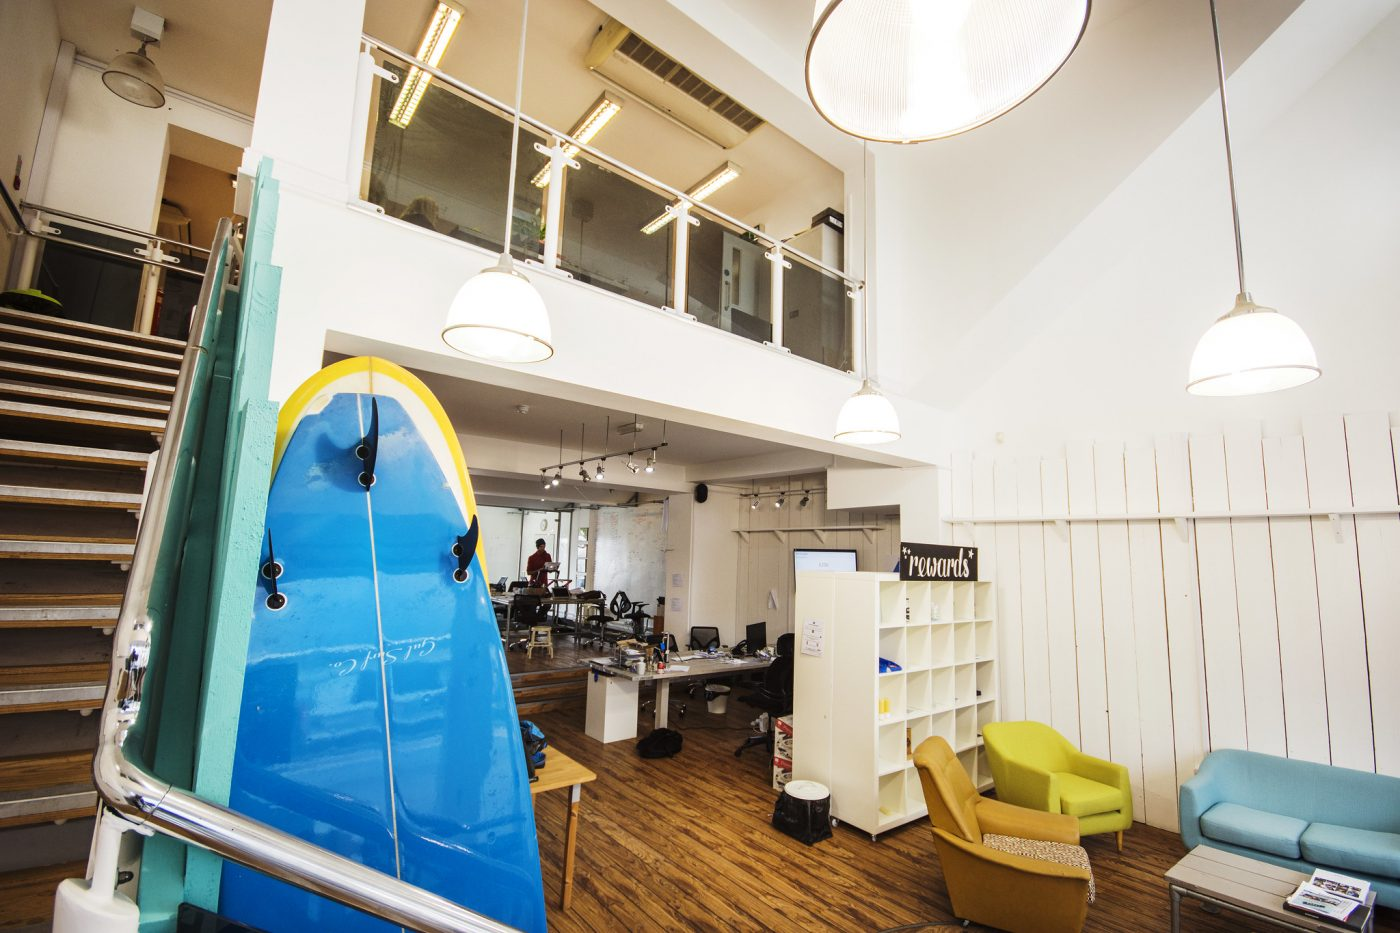 Surfboards in a studio with wooden floors and a mezzanine.